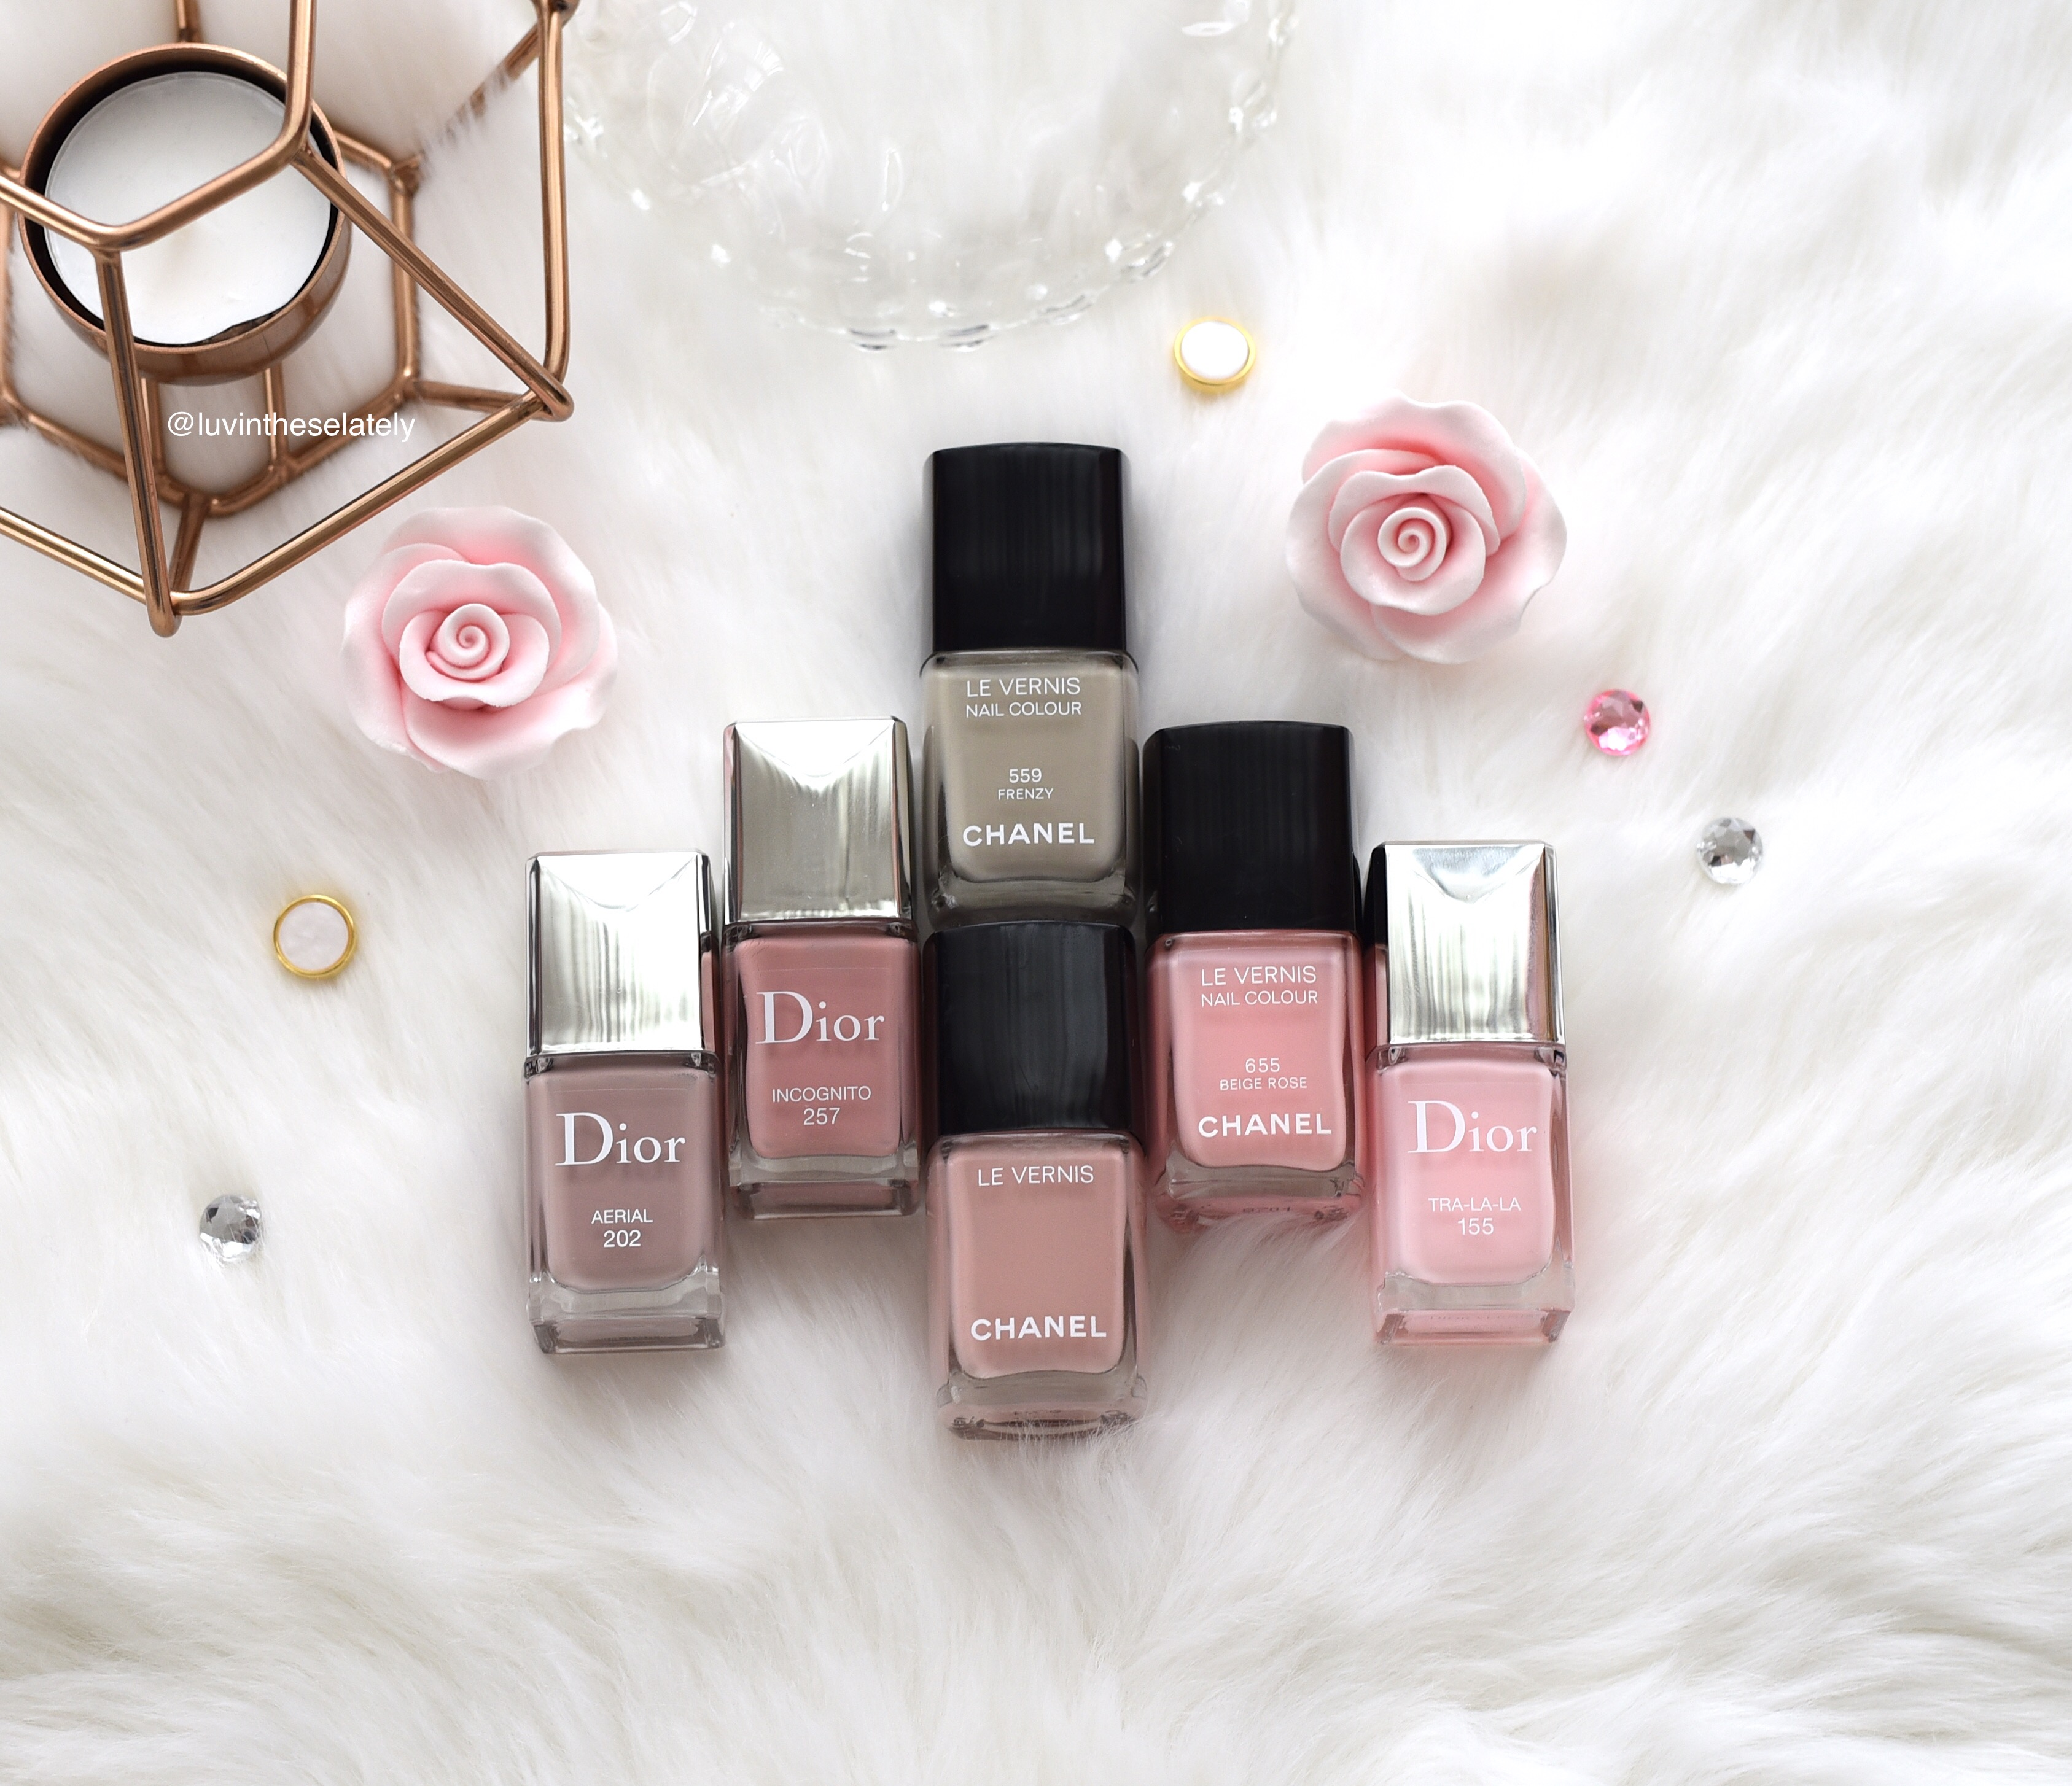 LuvinThese16in2016 : Dior Vernis and Chanel Le Vernis ...